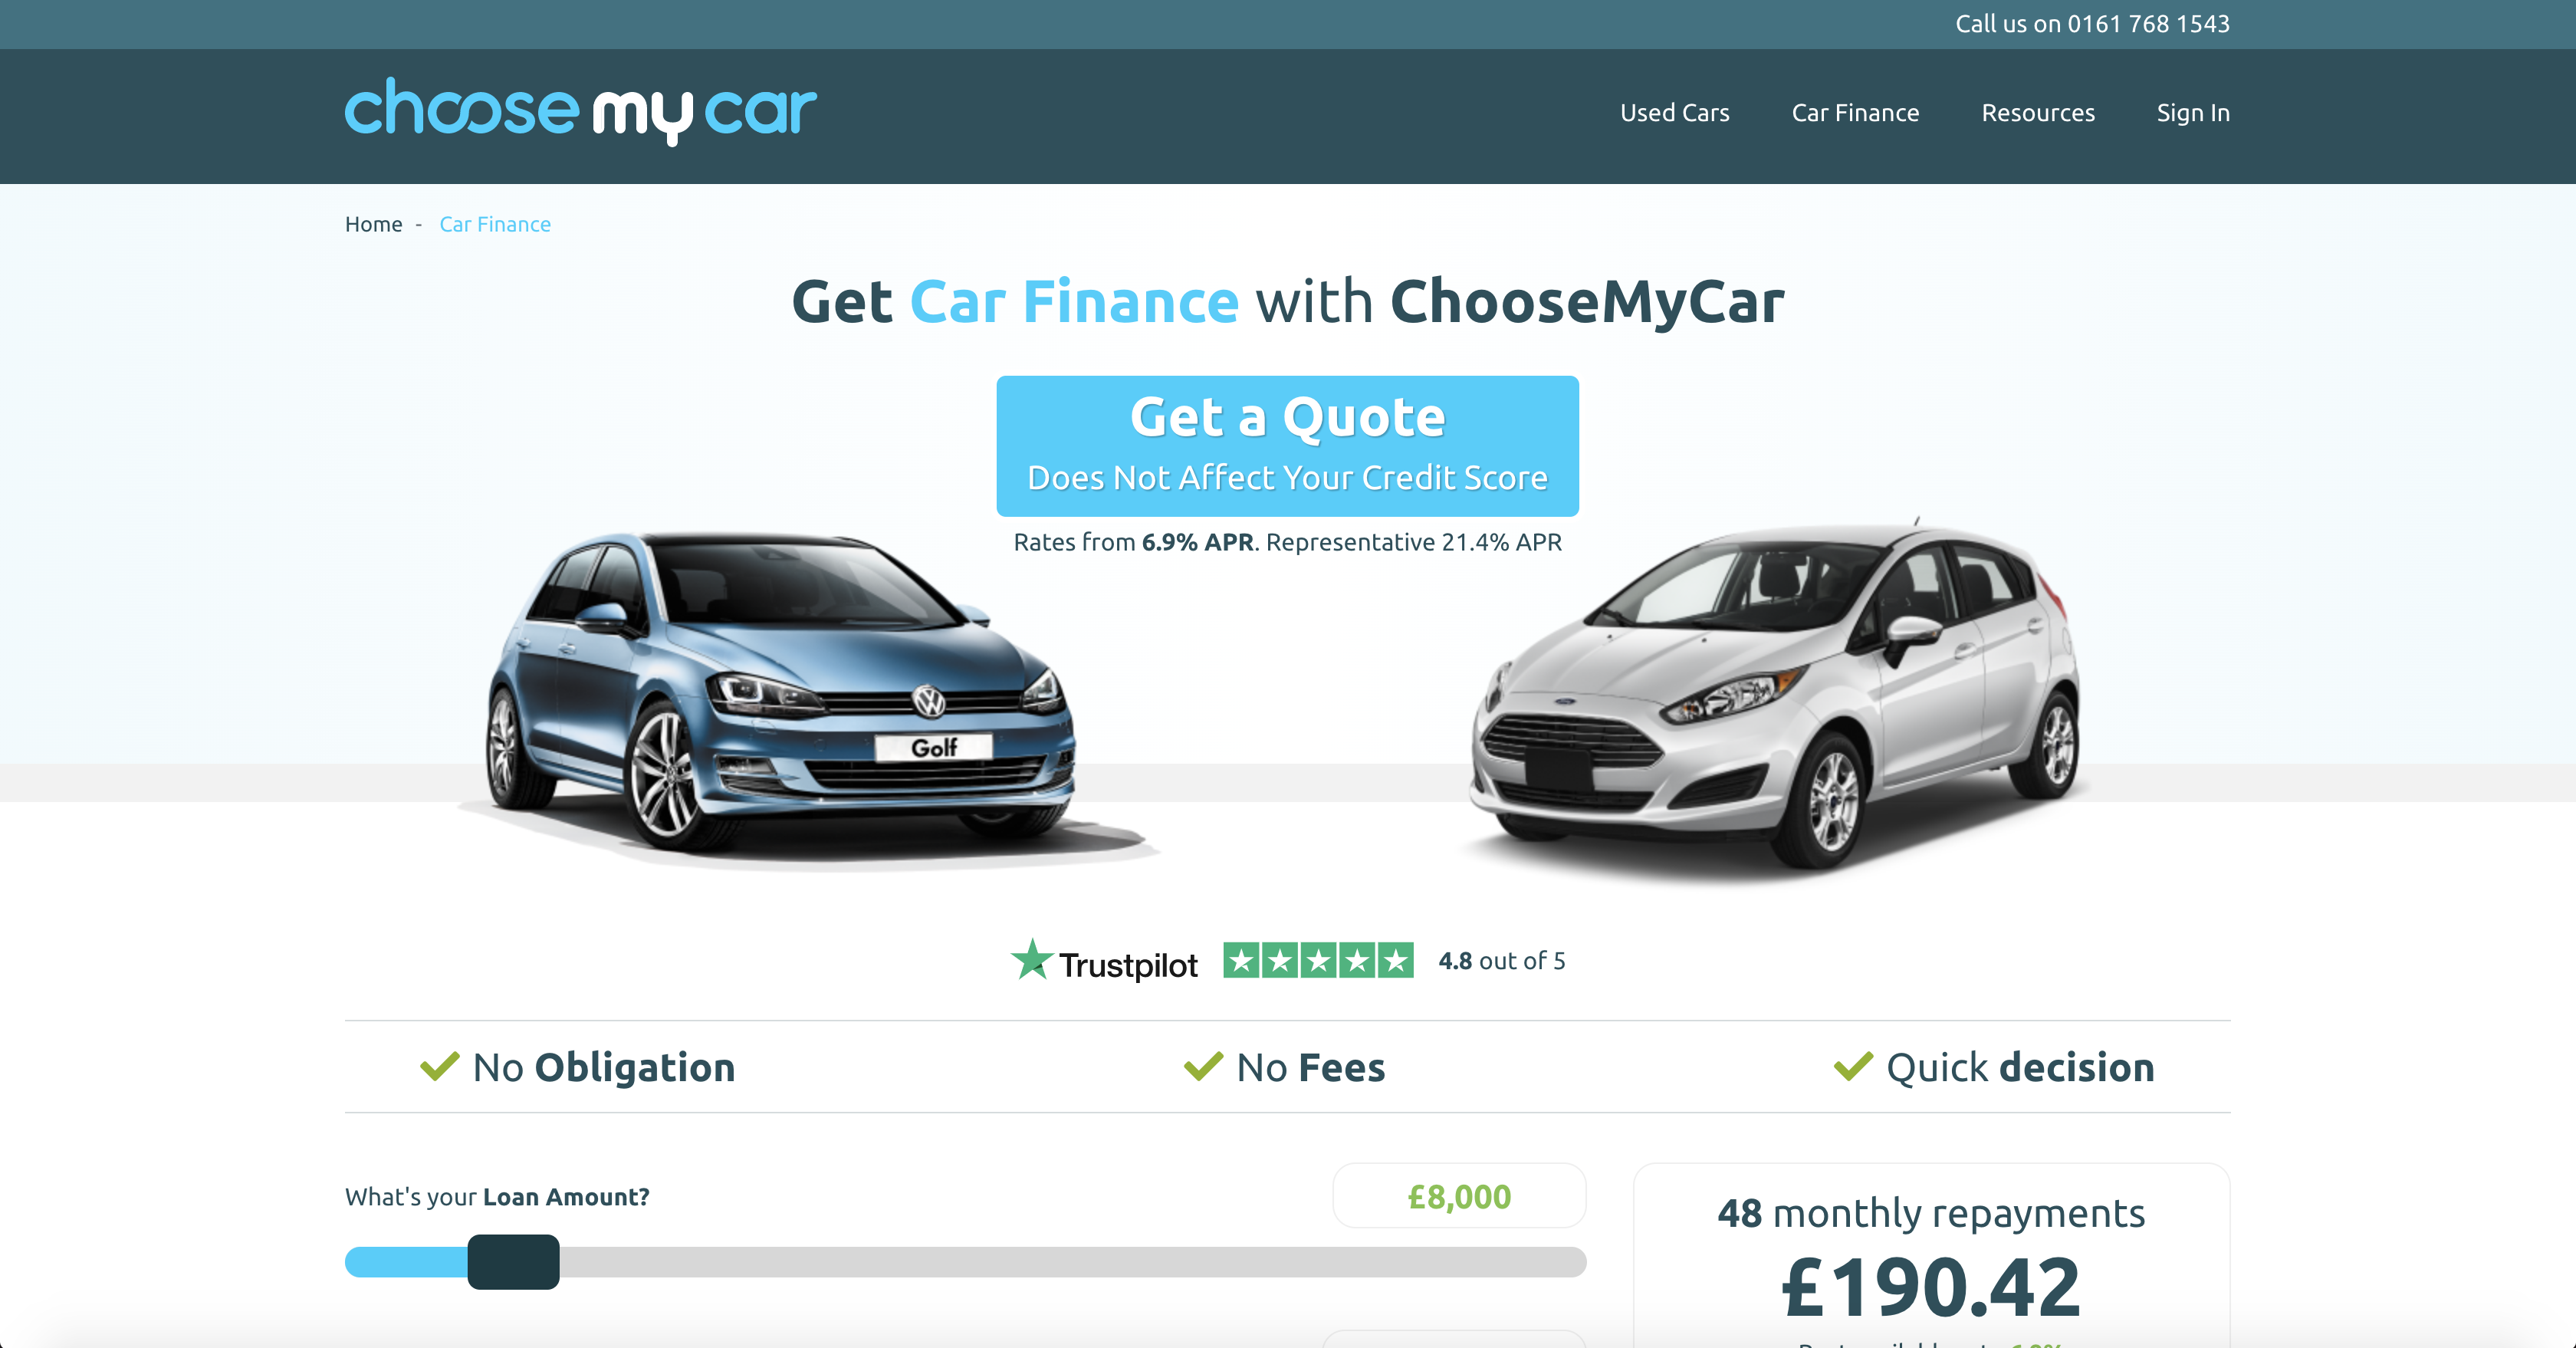 ChooseMyCar Car Finance Page